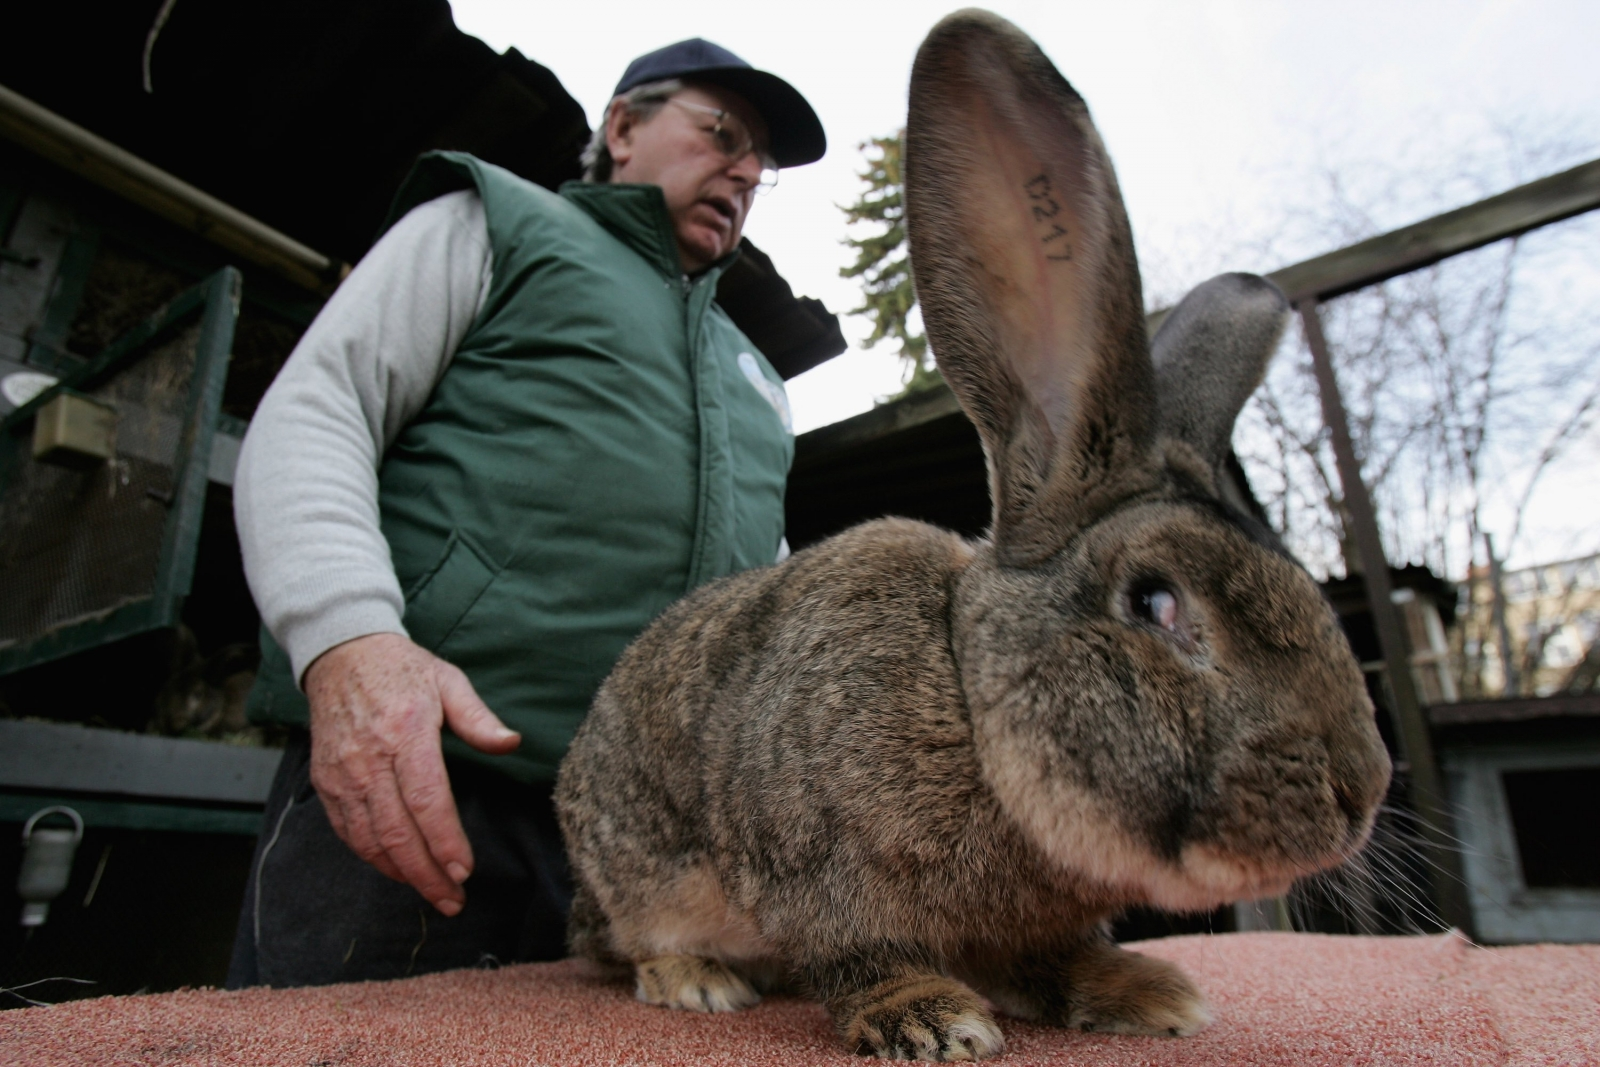 F Giant Rabbit United Airlines: Giant...